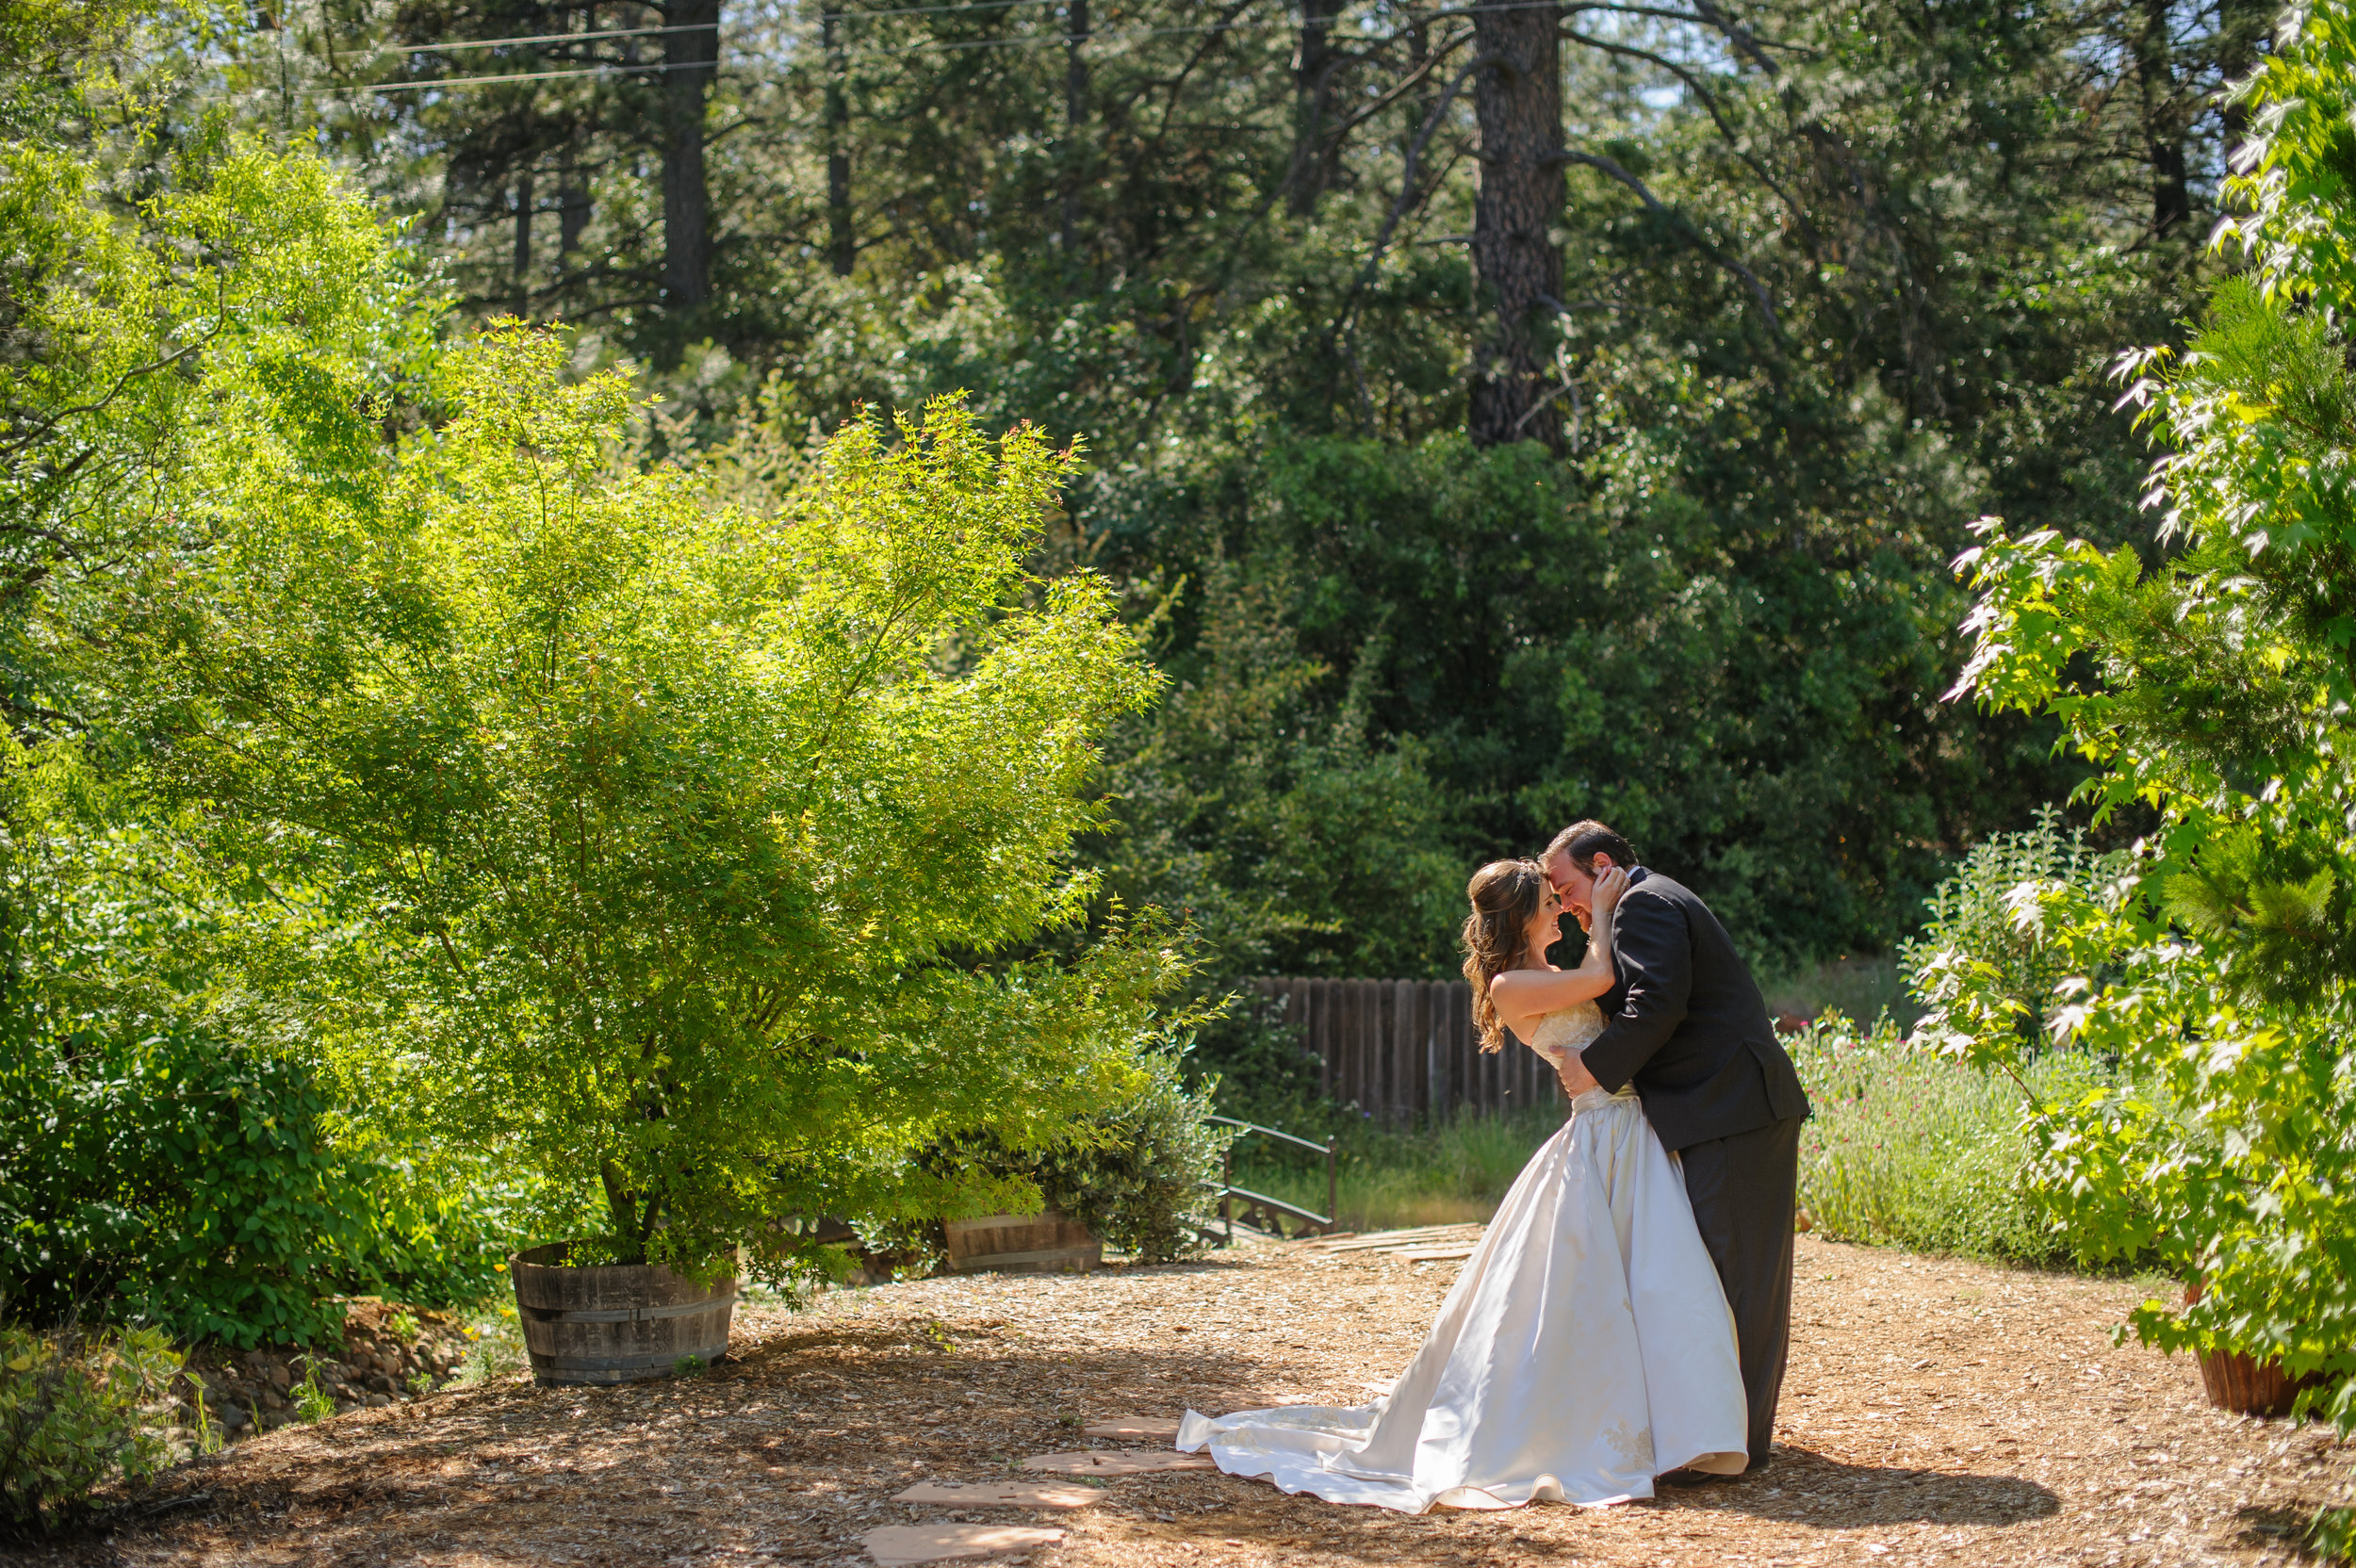 lindsey-charlie-059-monte-verde-inn-foresthill-wedding-photographer-katherine-nicole-photography.JPG